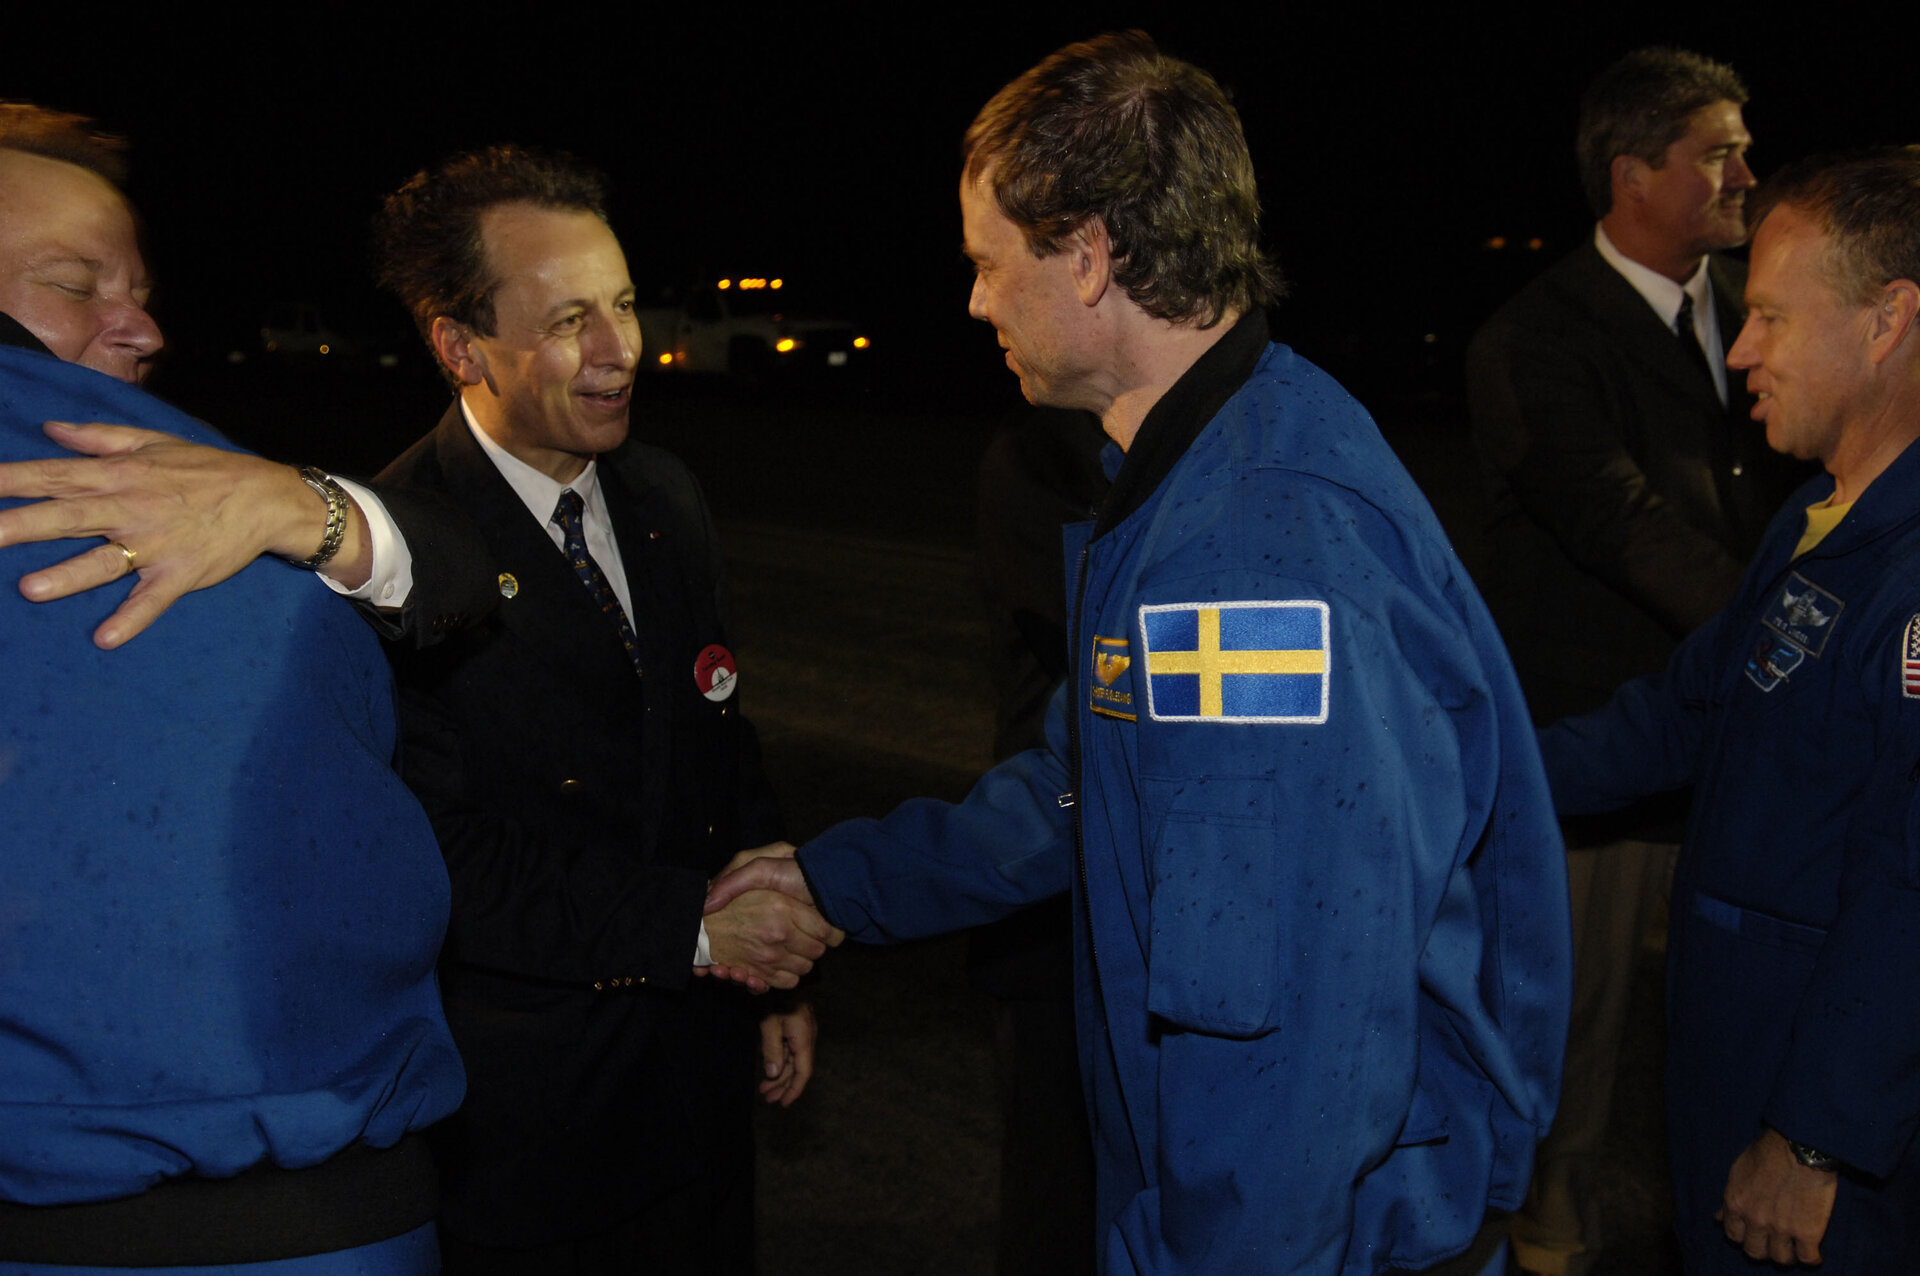 Shortly after landing Fuglesang is welcomed back by Michel Tognini, Head of the European Astronaut Centre